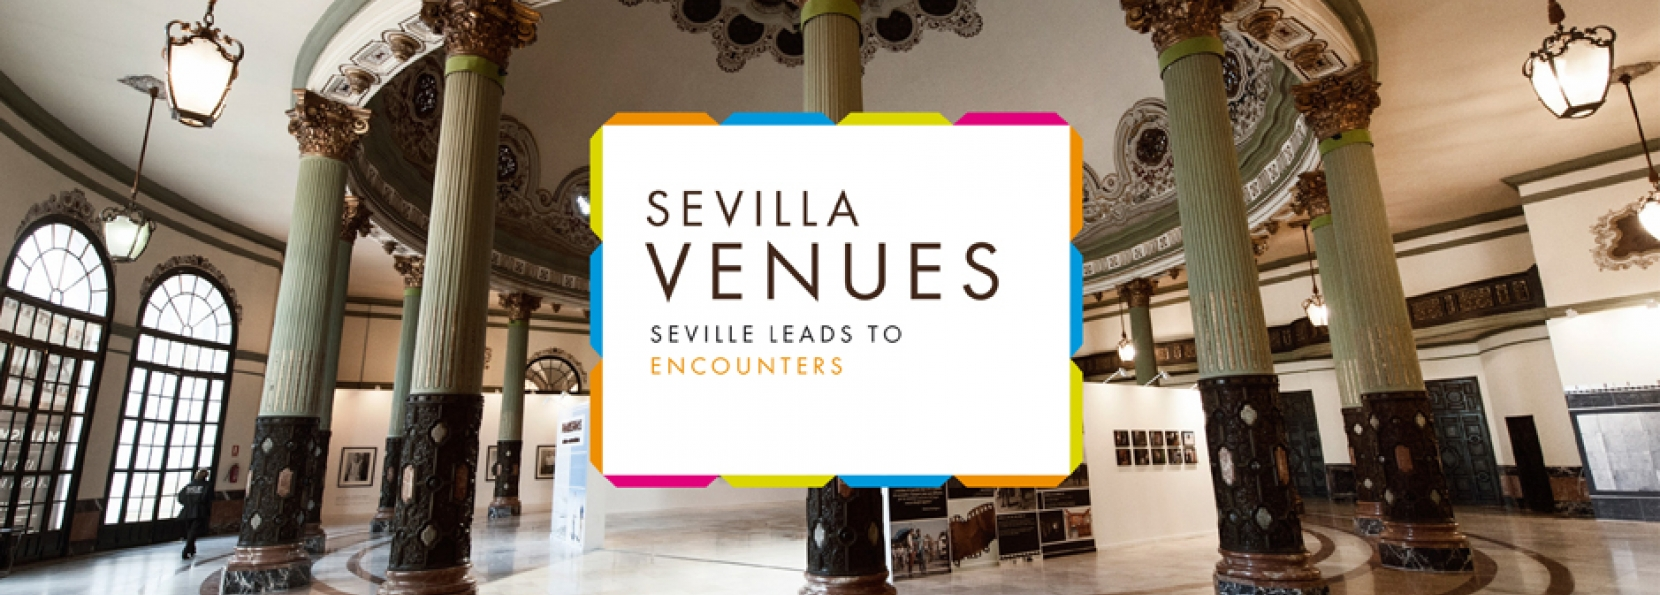 Seville Leads to encounters